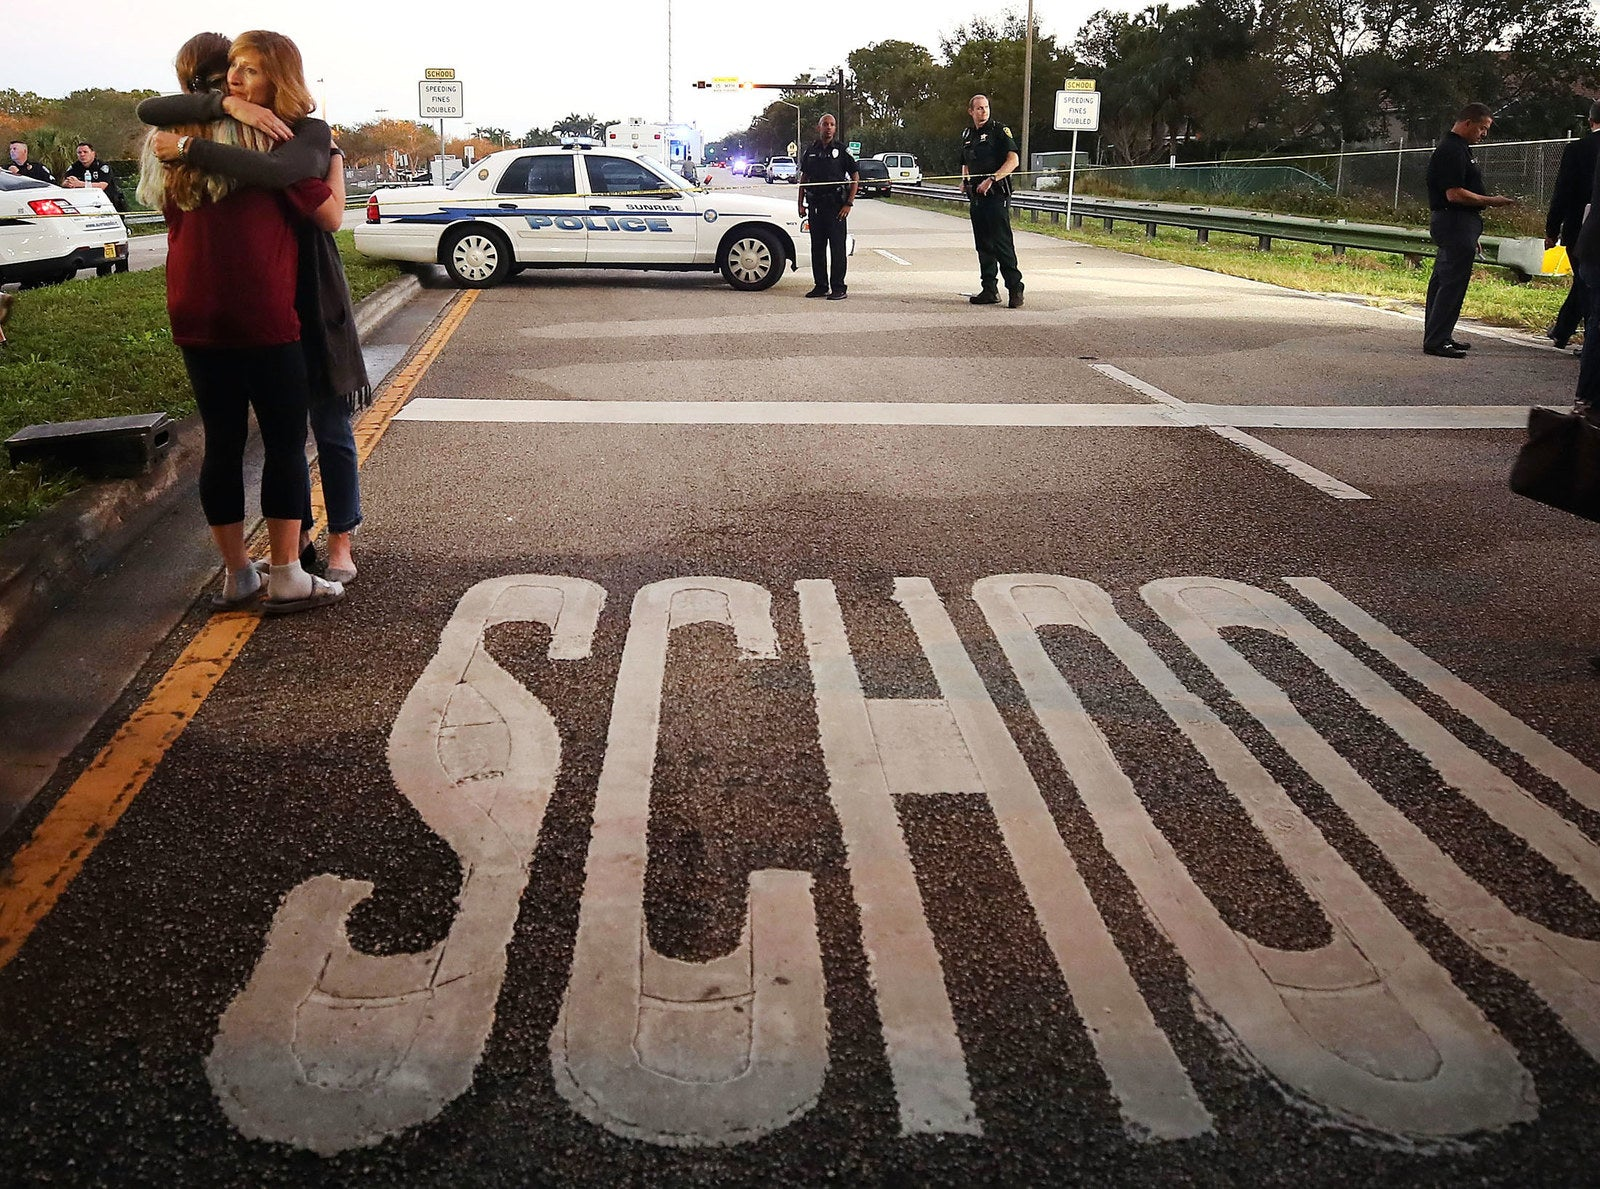 Kristi Gilroy (right) hugs a young woman at a police checkpoint near the Marjory Stoneman Douglas High School on Feb. 15, the day after 17 people were killed by a shooter at the Parkland, Florida, school. Police arrested the suspect after a short manhunt.